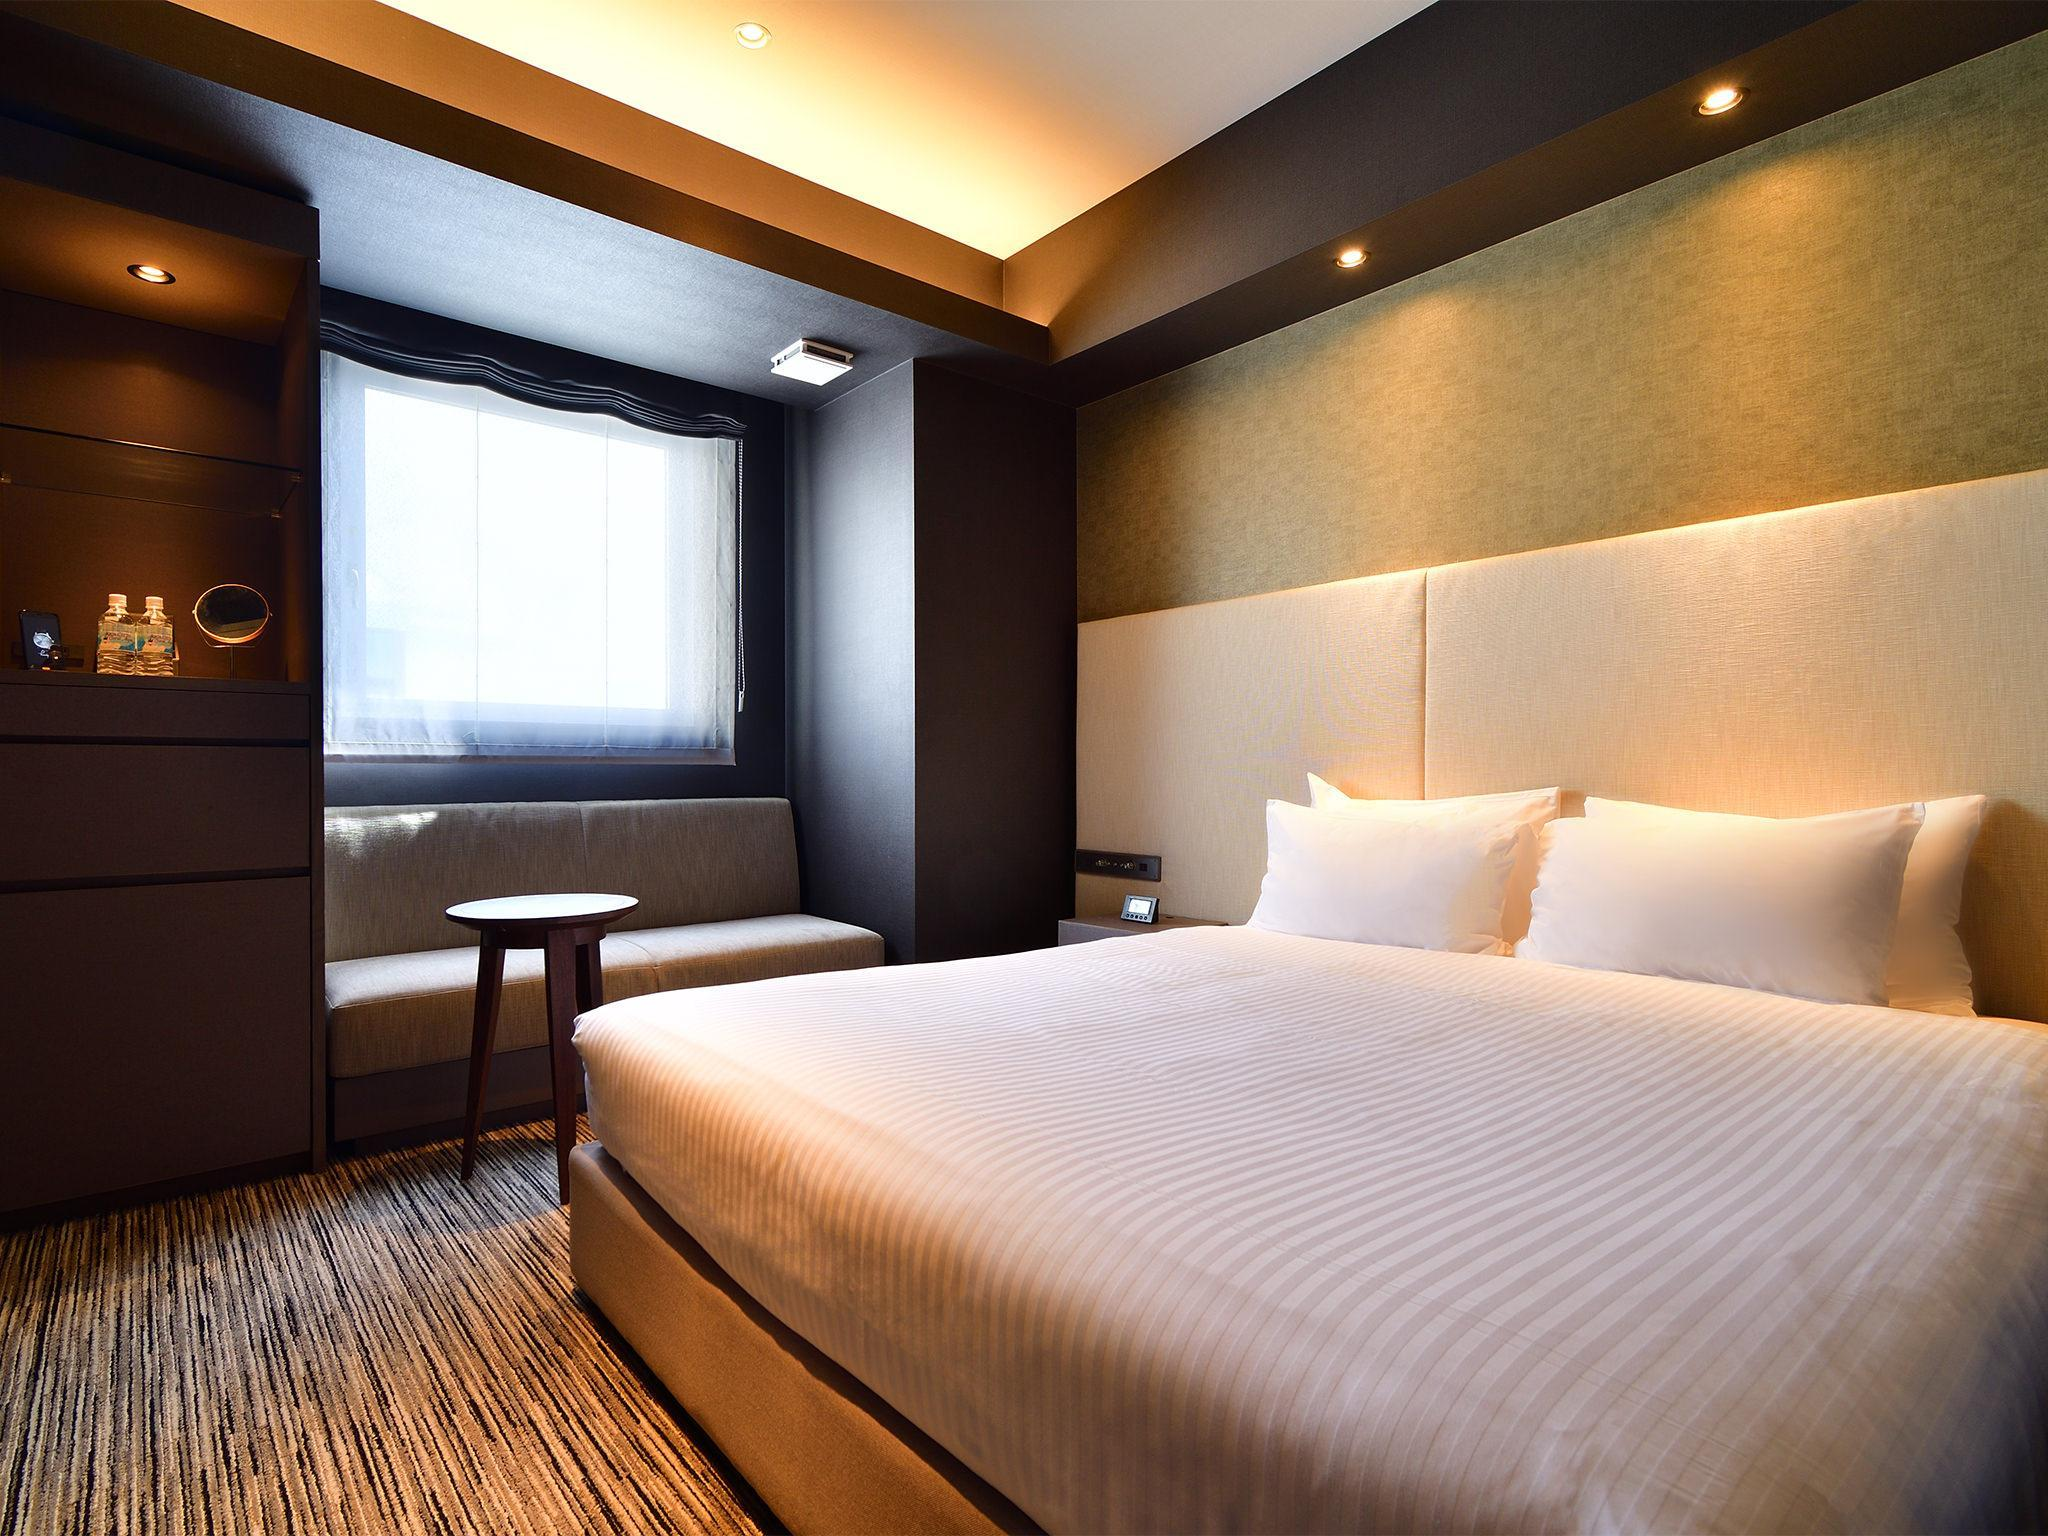 行政雙人房 (Executive Double Room)